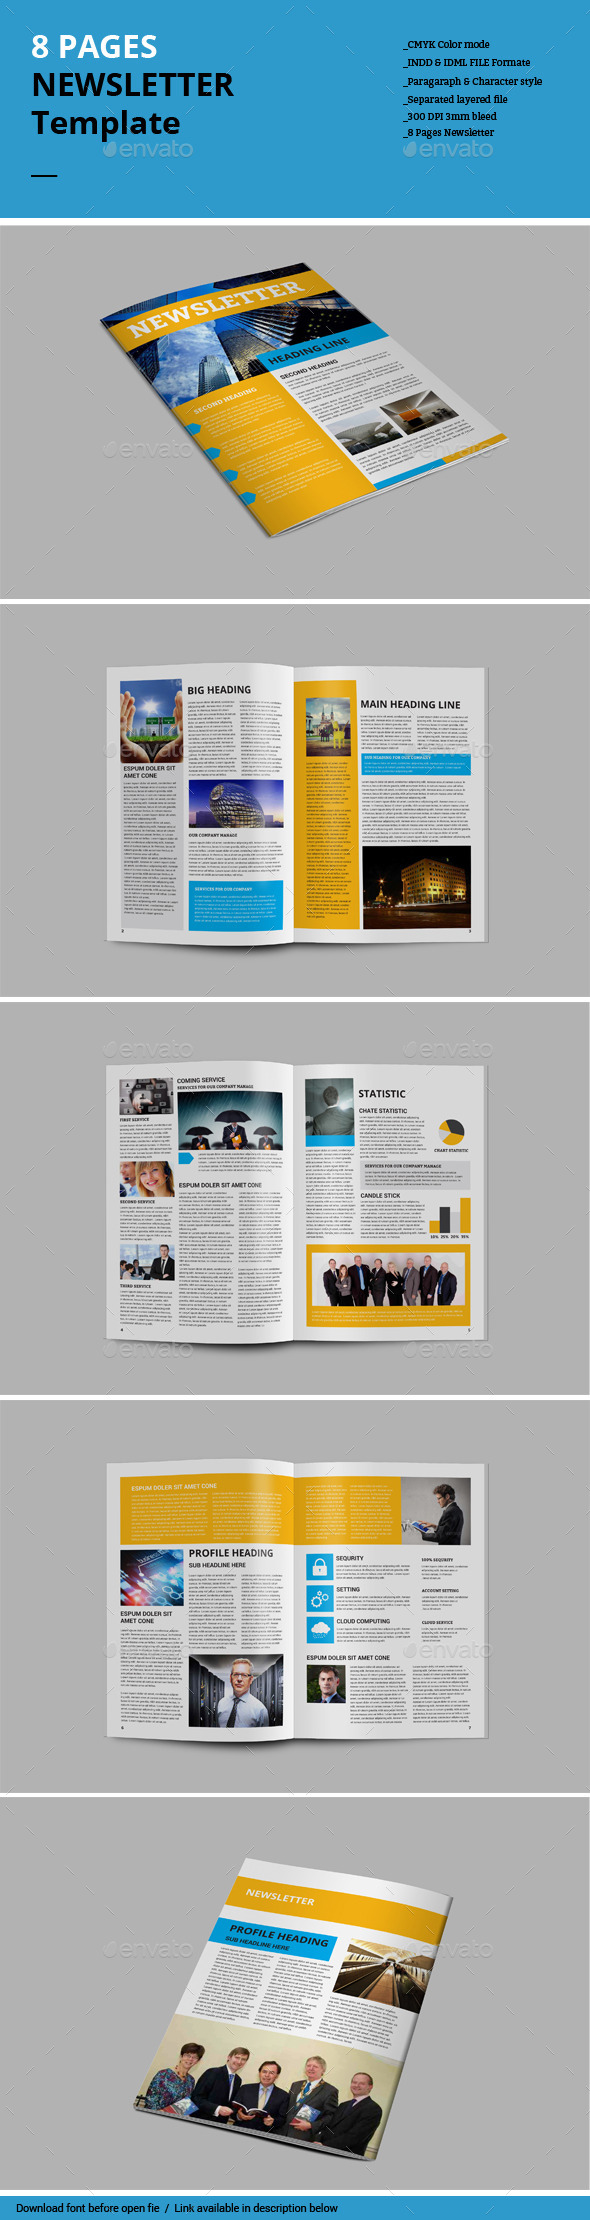 GraphicRiver 8 Pages Newsletter Template 8960712